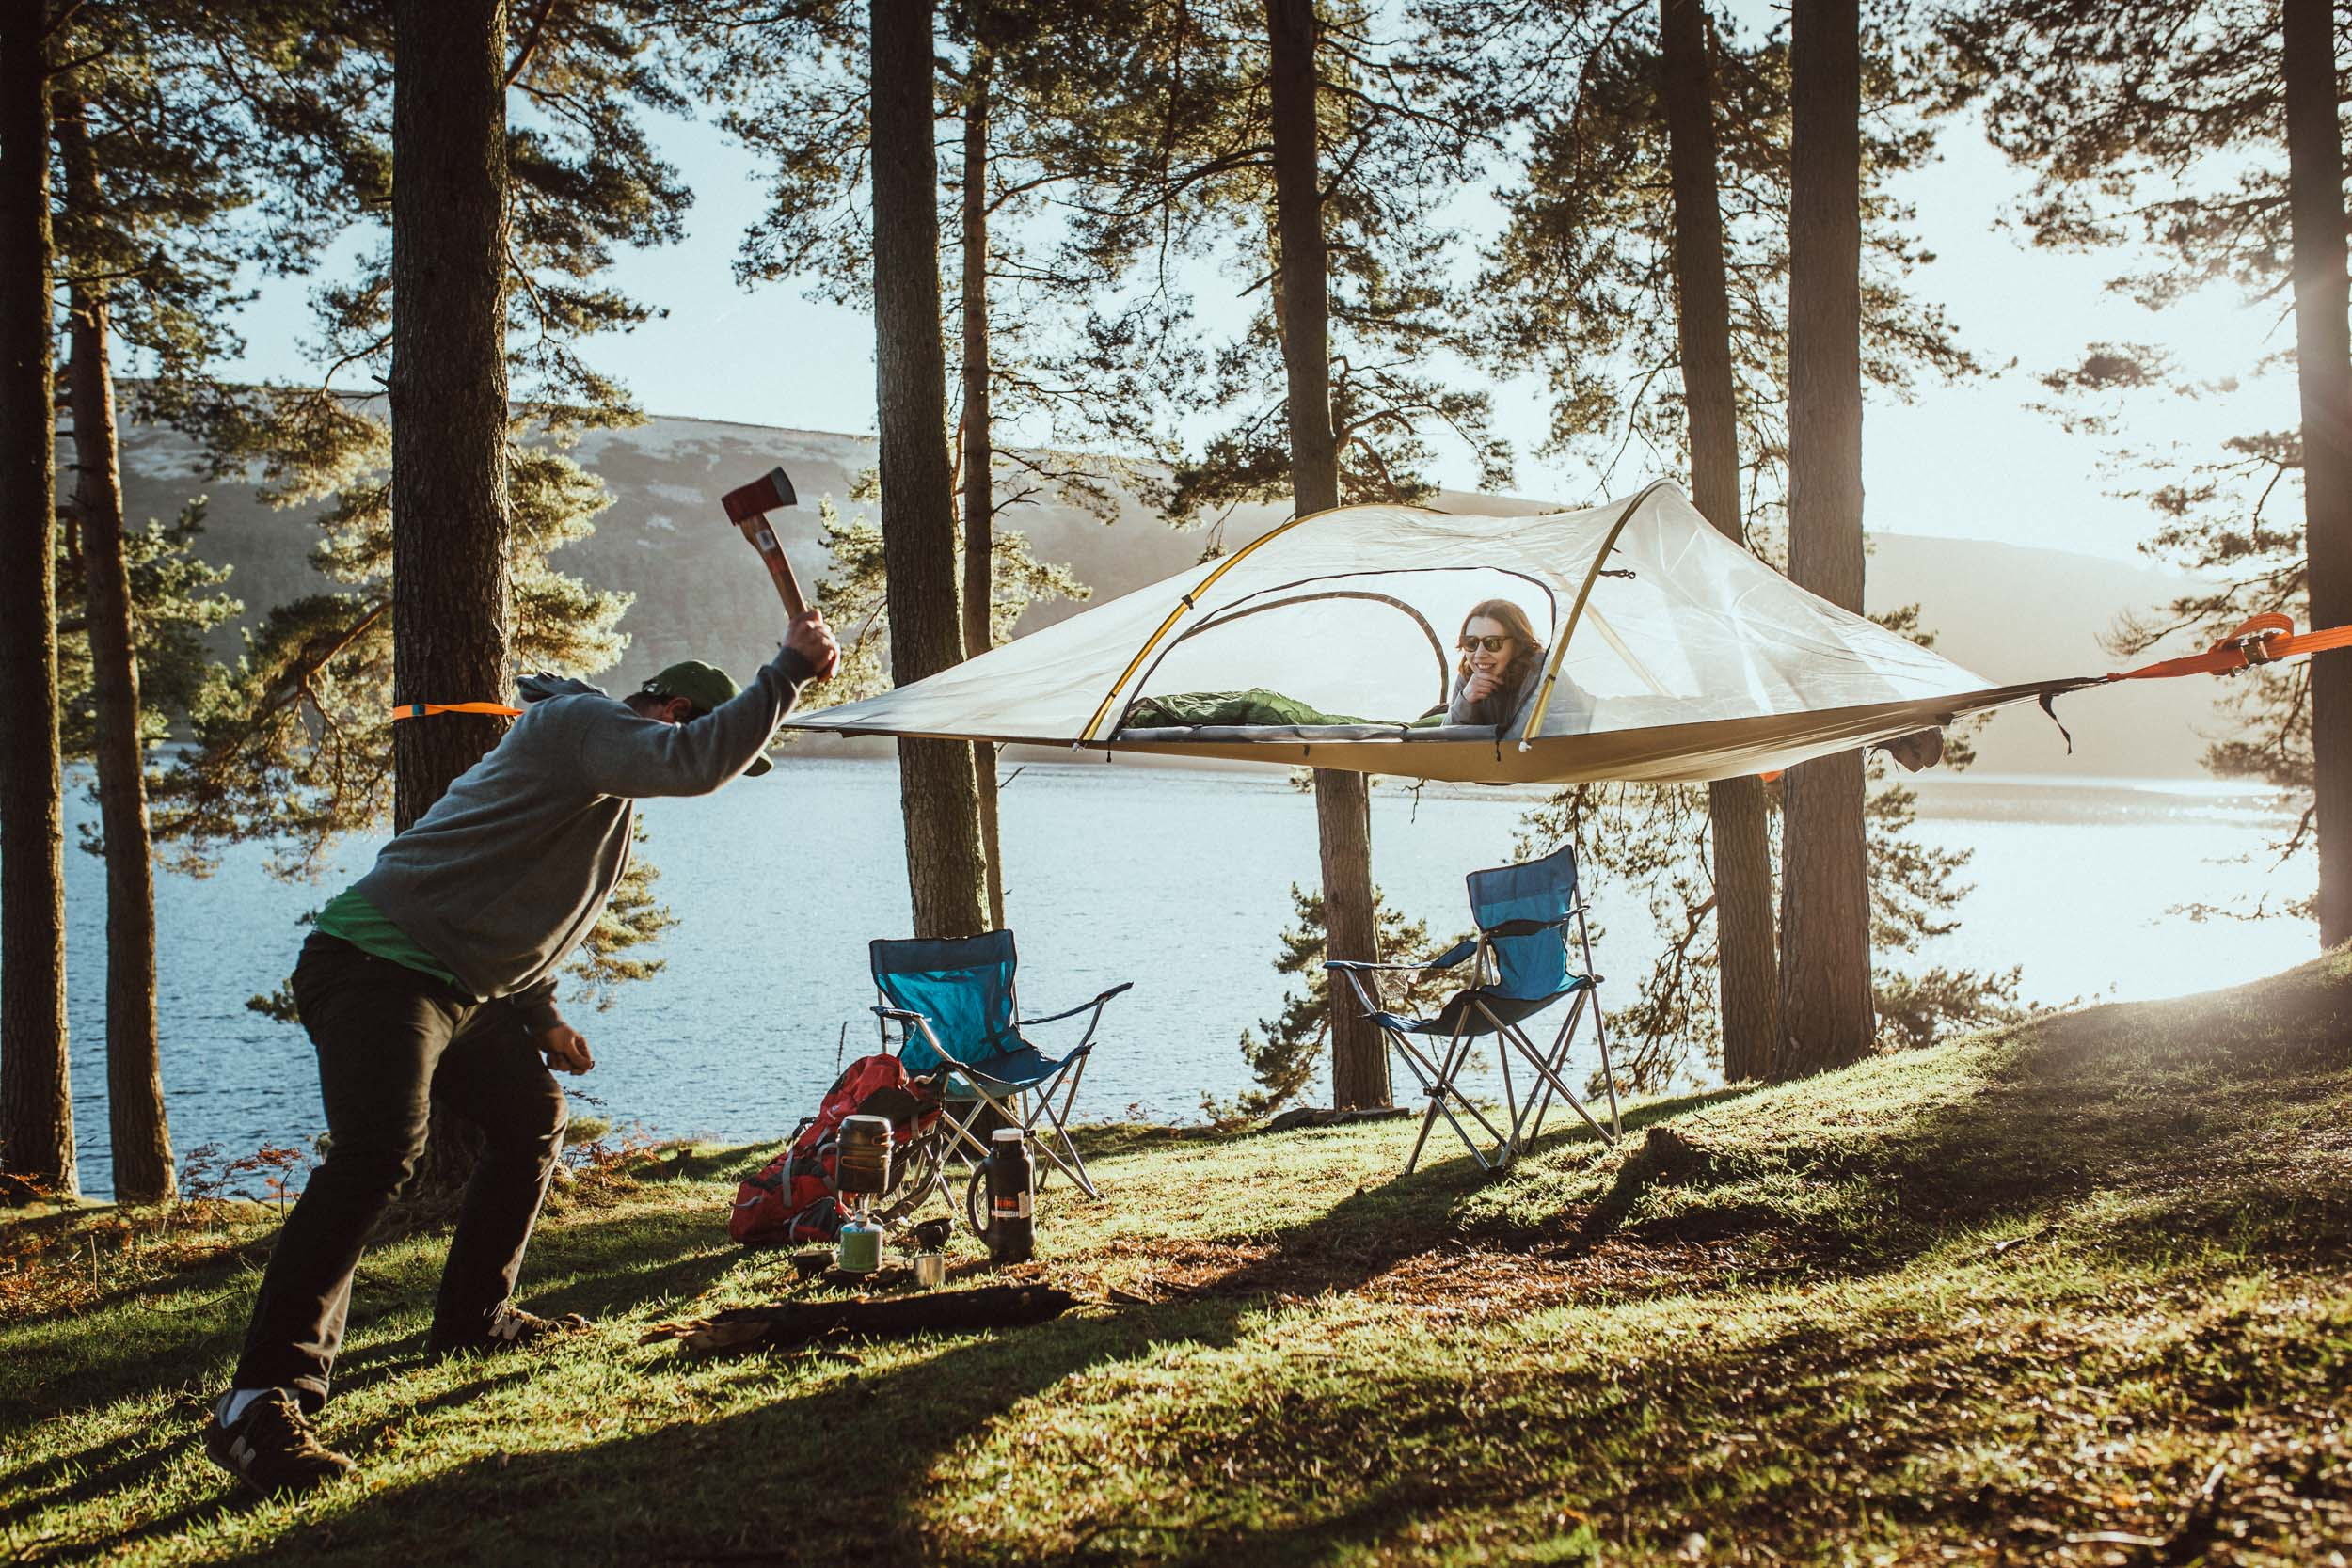 Tentsile_Safaria_Lifestyle_ByTomkahler_Lowres (12 of 63).jpg